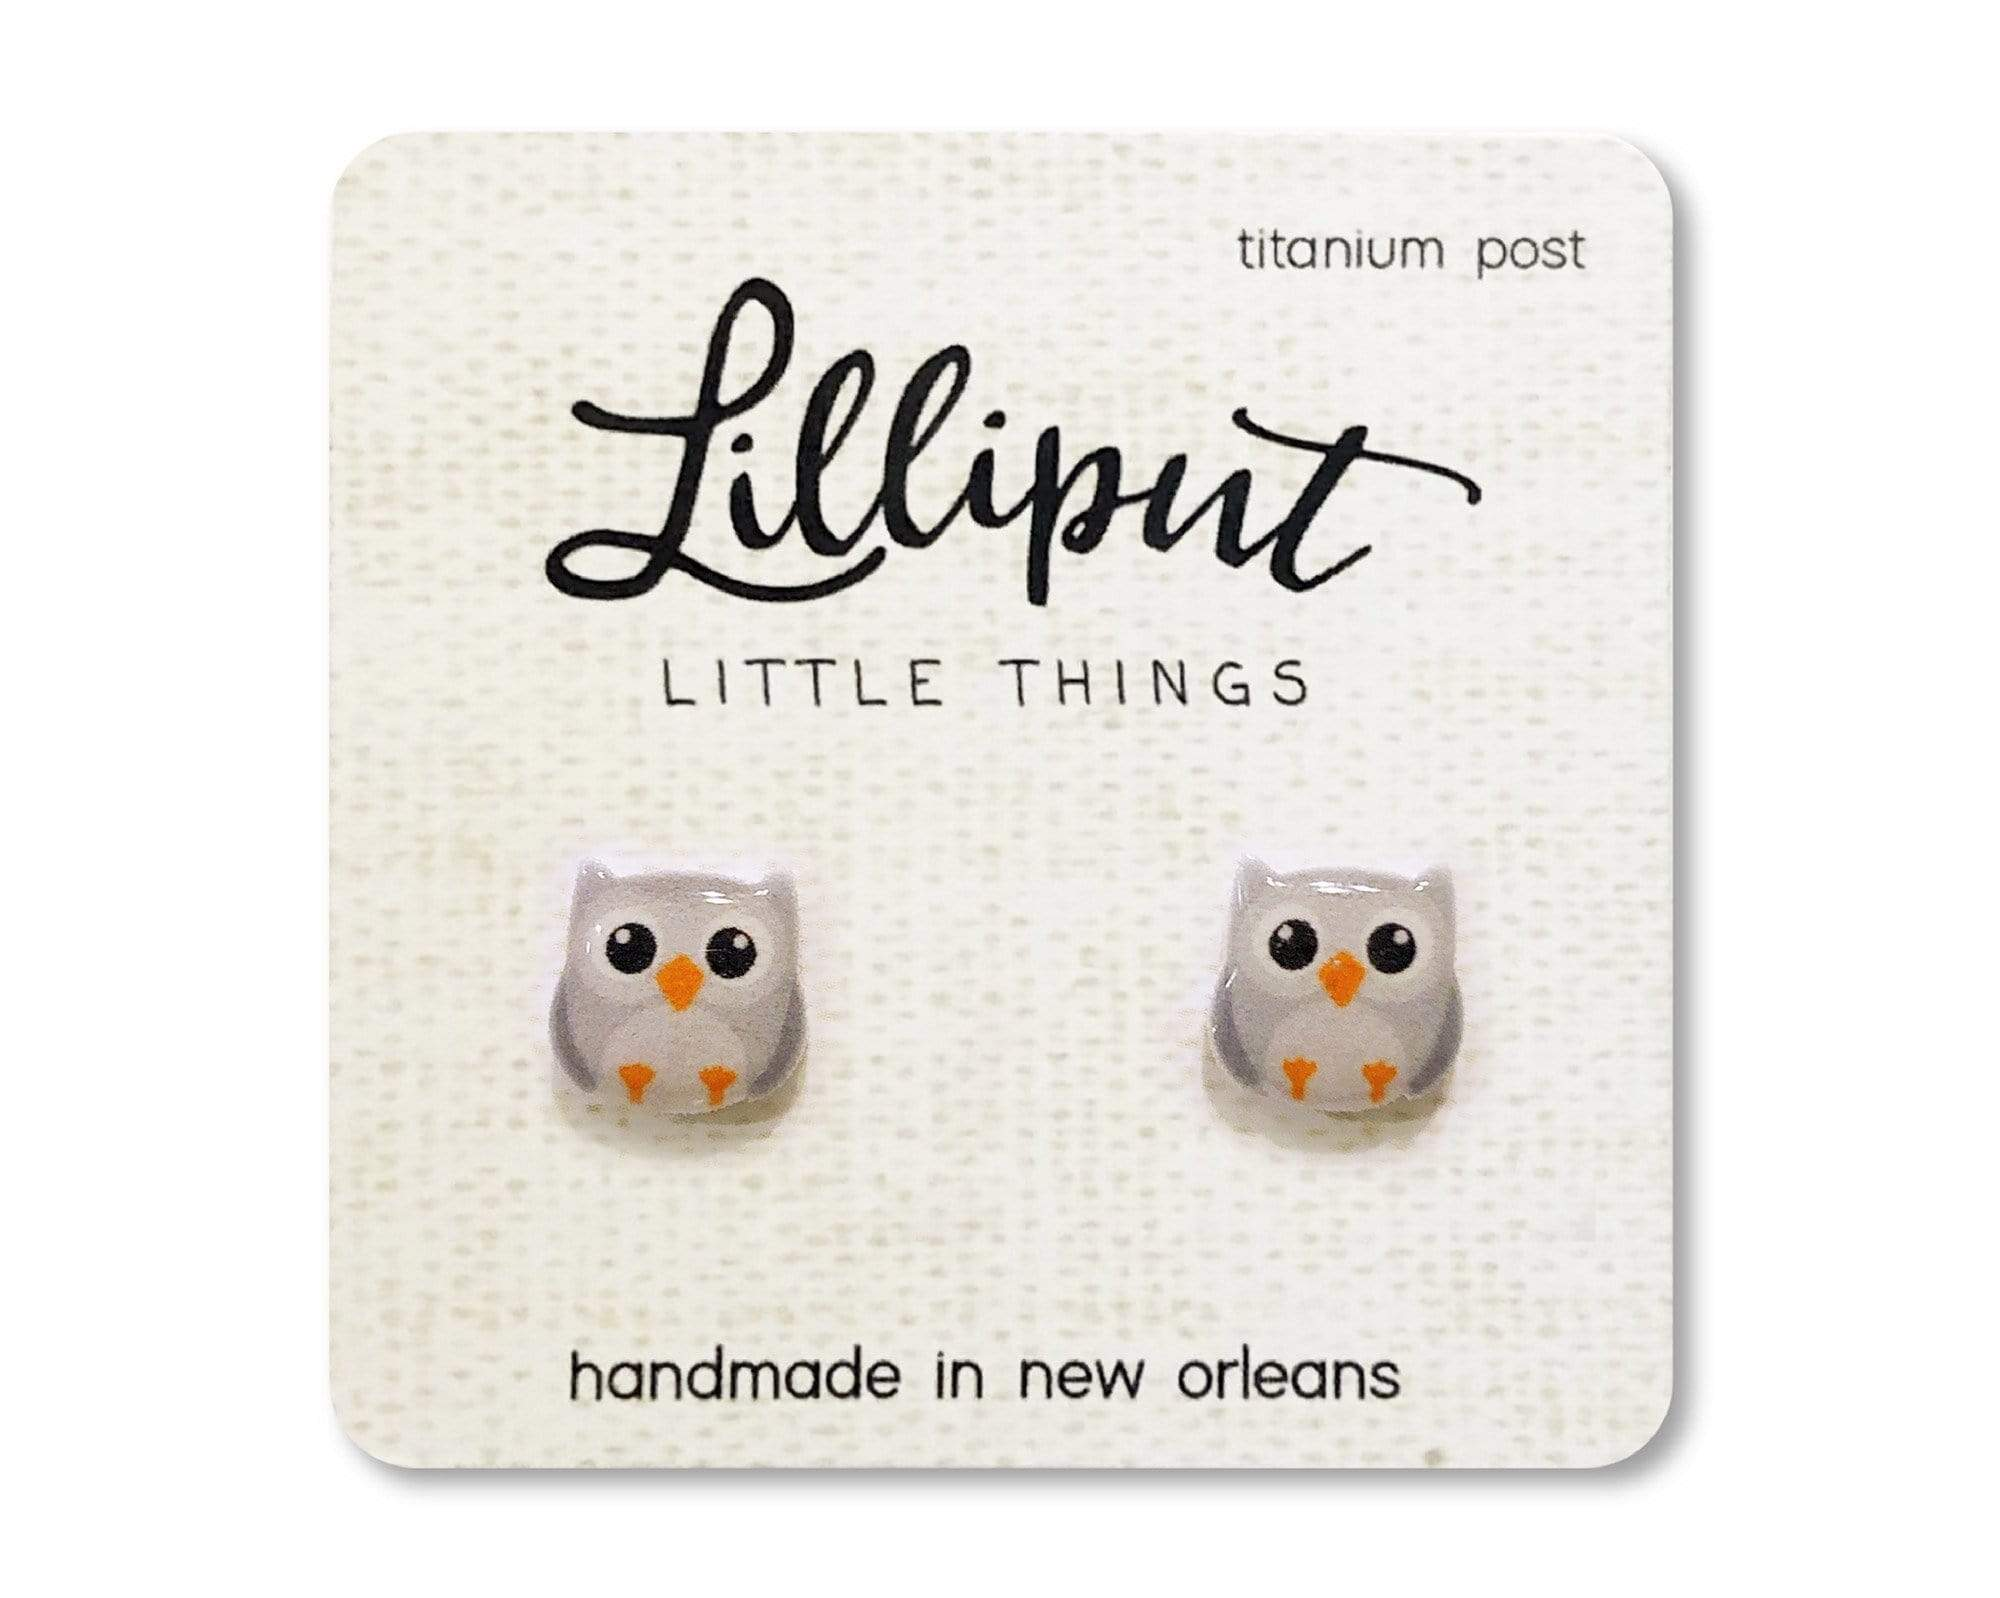 Cute Owl Earrings Lilliput Little Things Clothing/Accessories